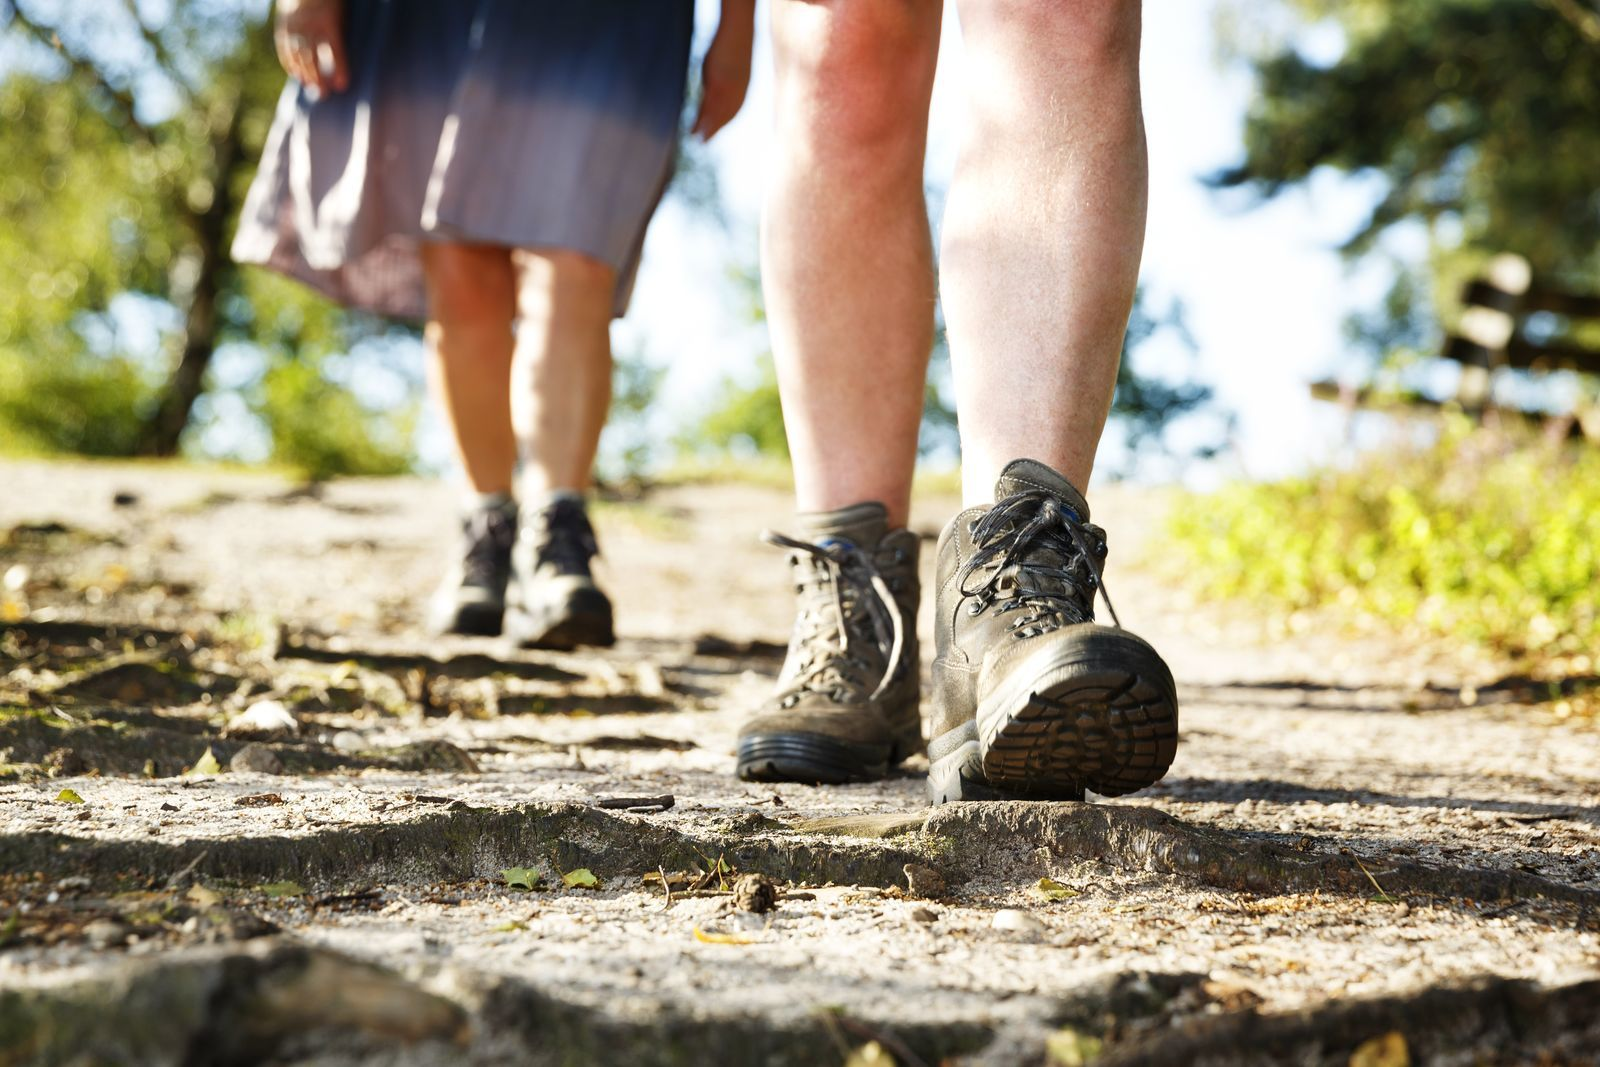 4 Day Evening Walk Holten May 14 to 17. Prices starting €245 all in.